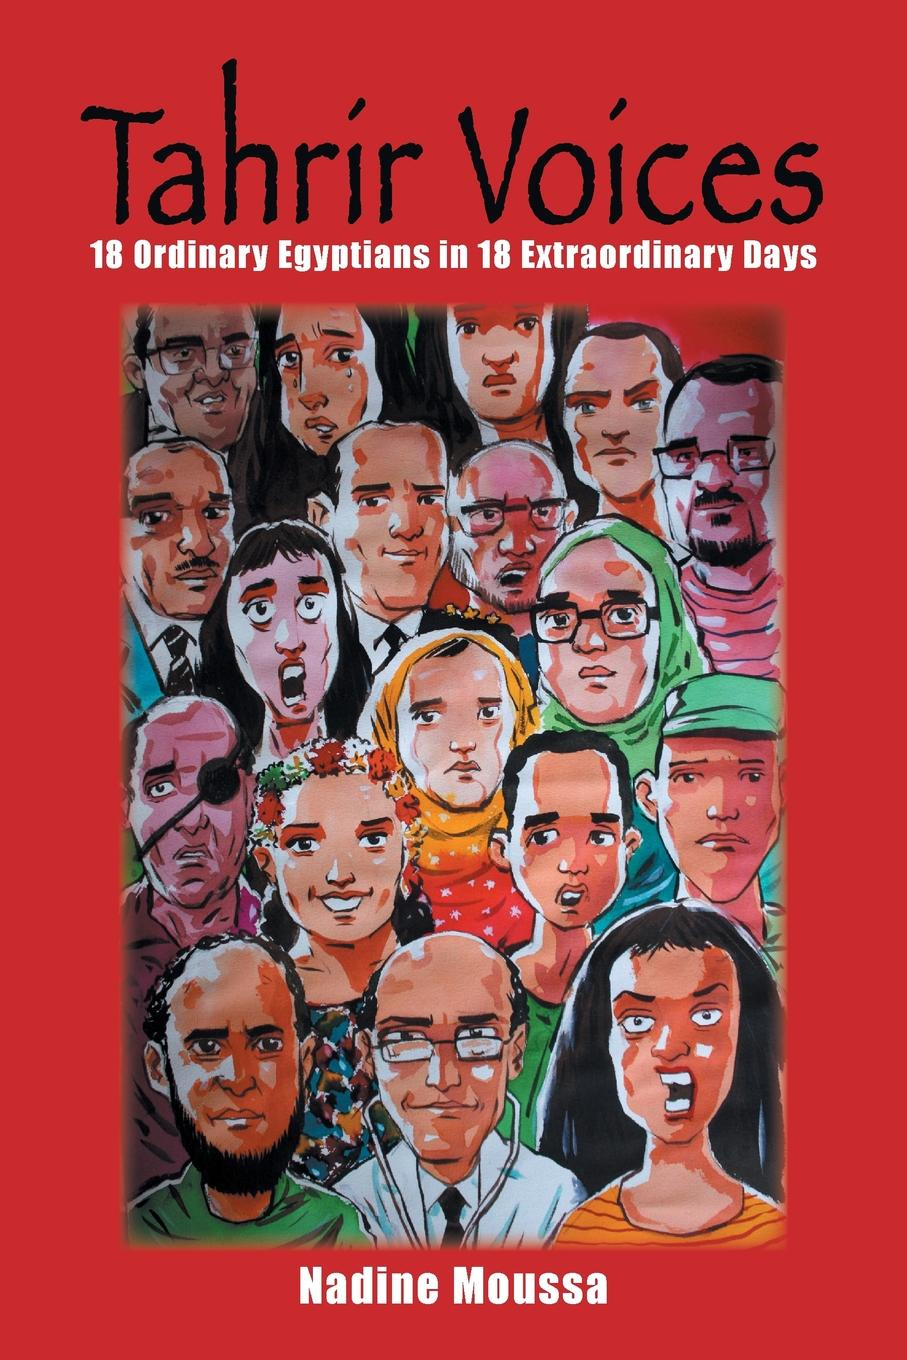 Nadine Moussa Tahrir Voices. 18 Ordinary Egyptians in 18 Extraordinary Days browne abdullah bonaparte in egypt and the egyptians of to day